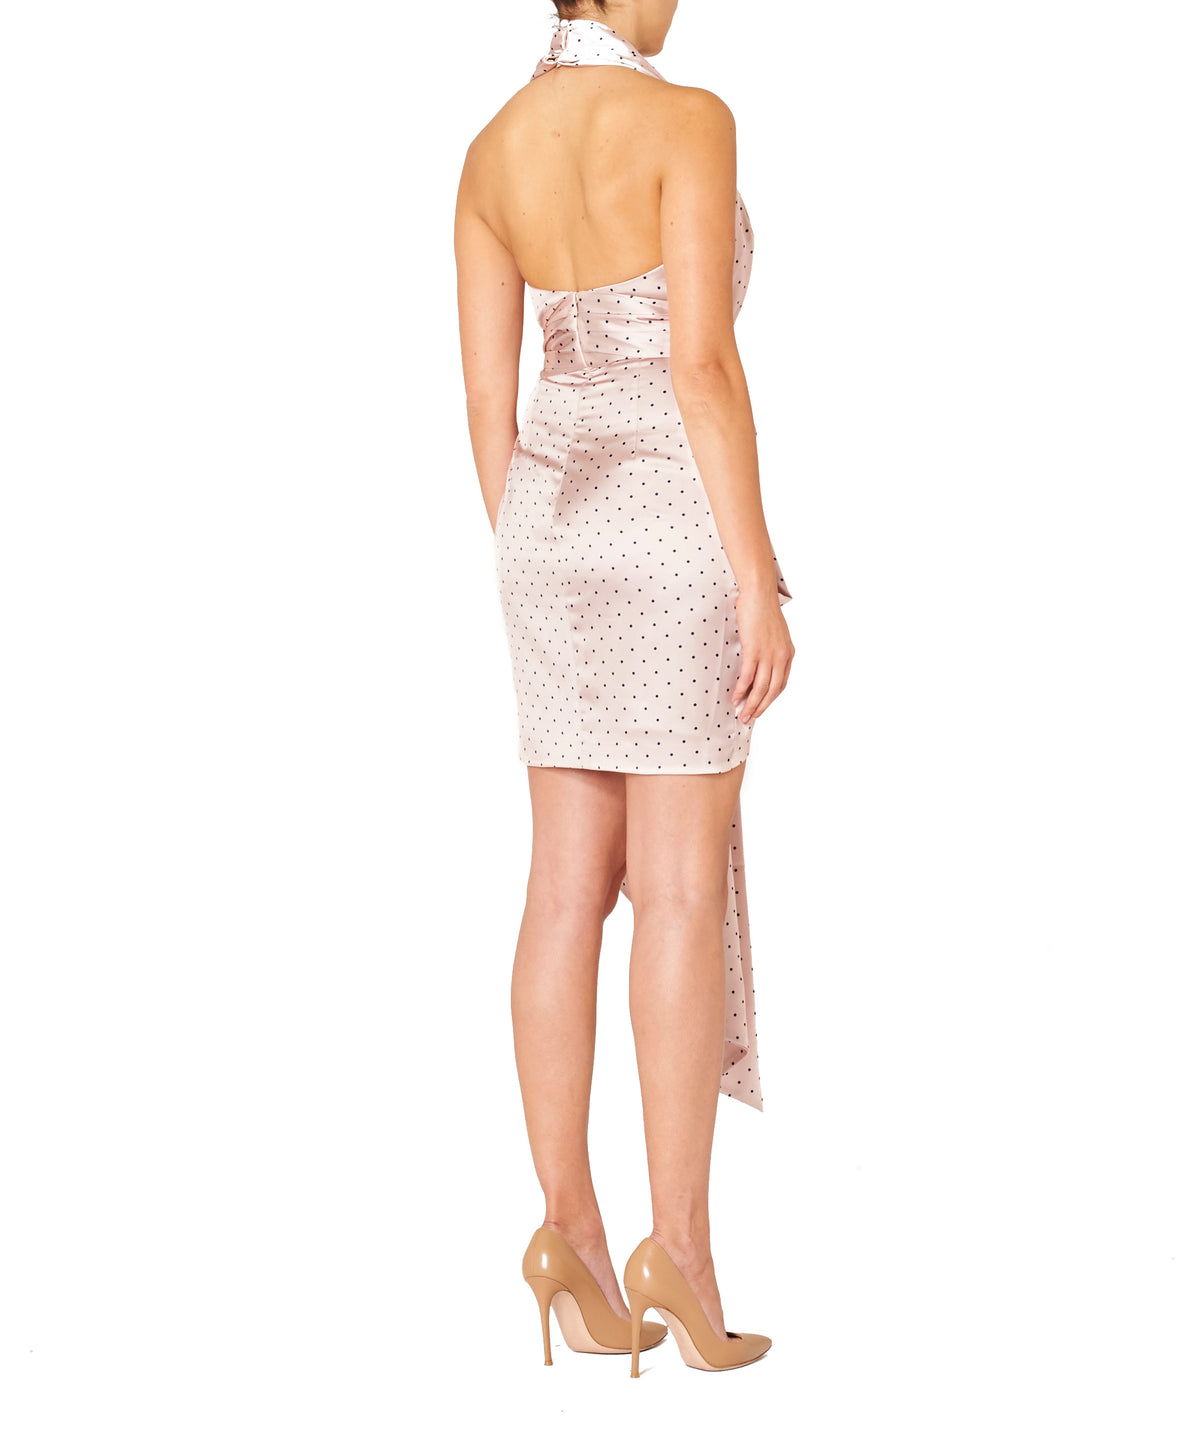 Misha Ceillia Women Mini Dress Polka Dot